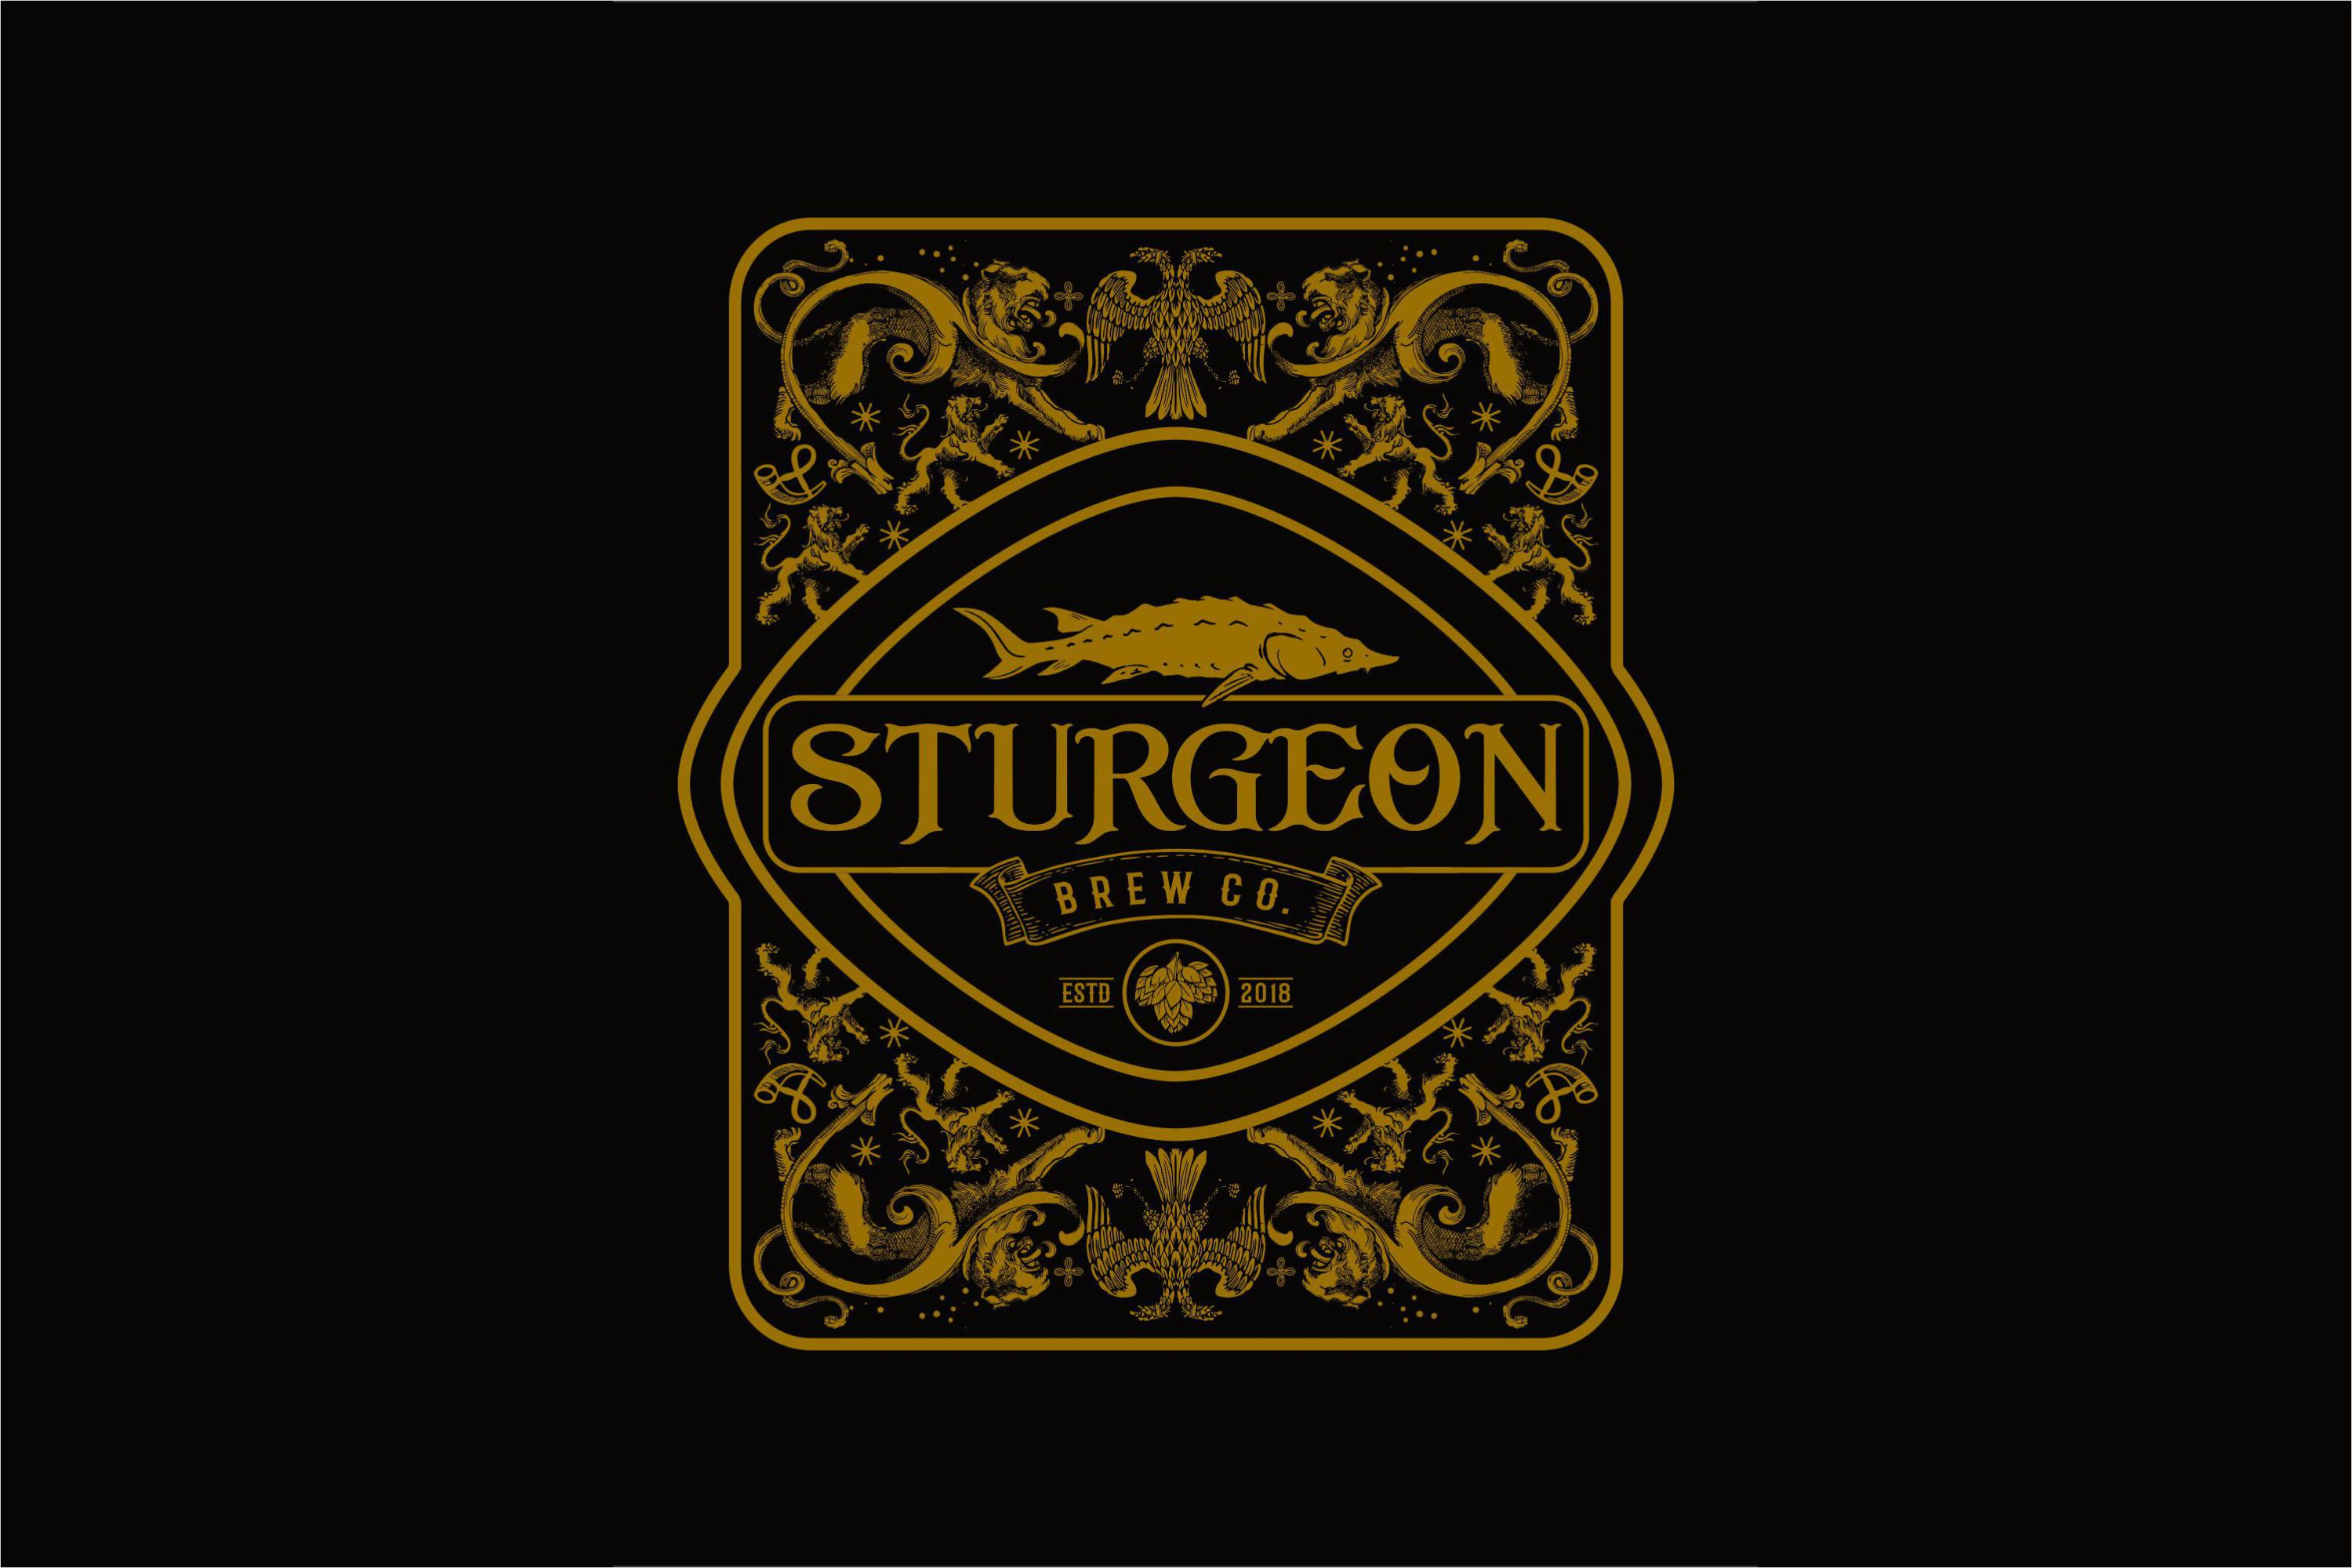 Sturgeon Vintage Logo Pack example image 2